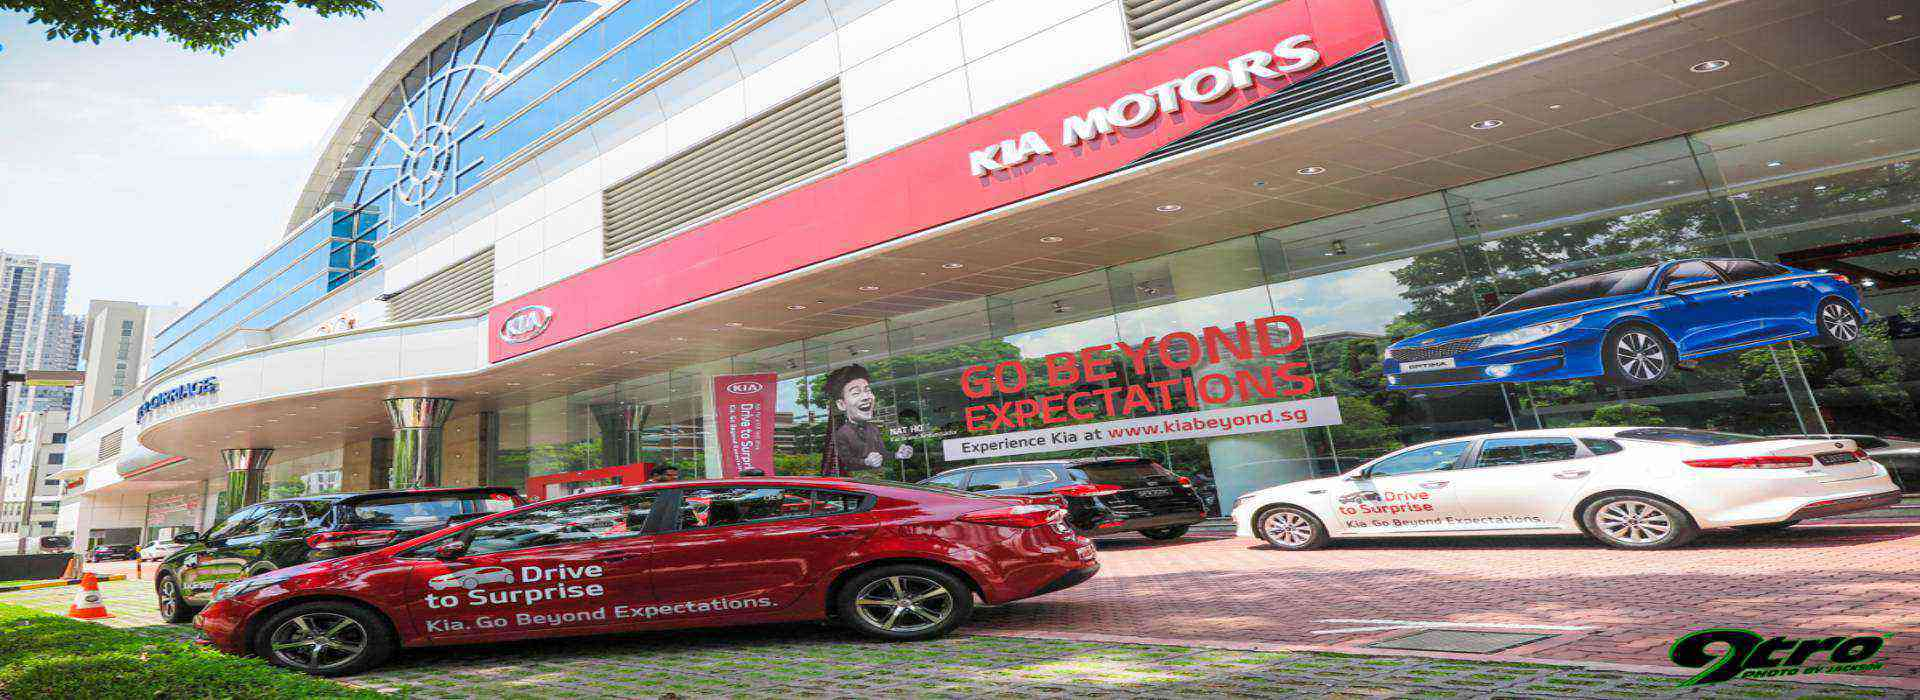 kia motors singapore customer service number